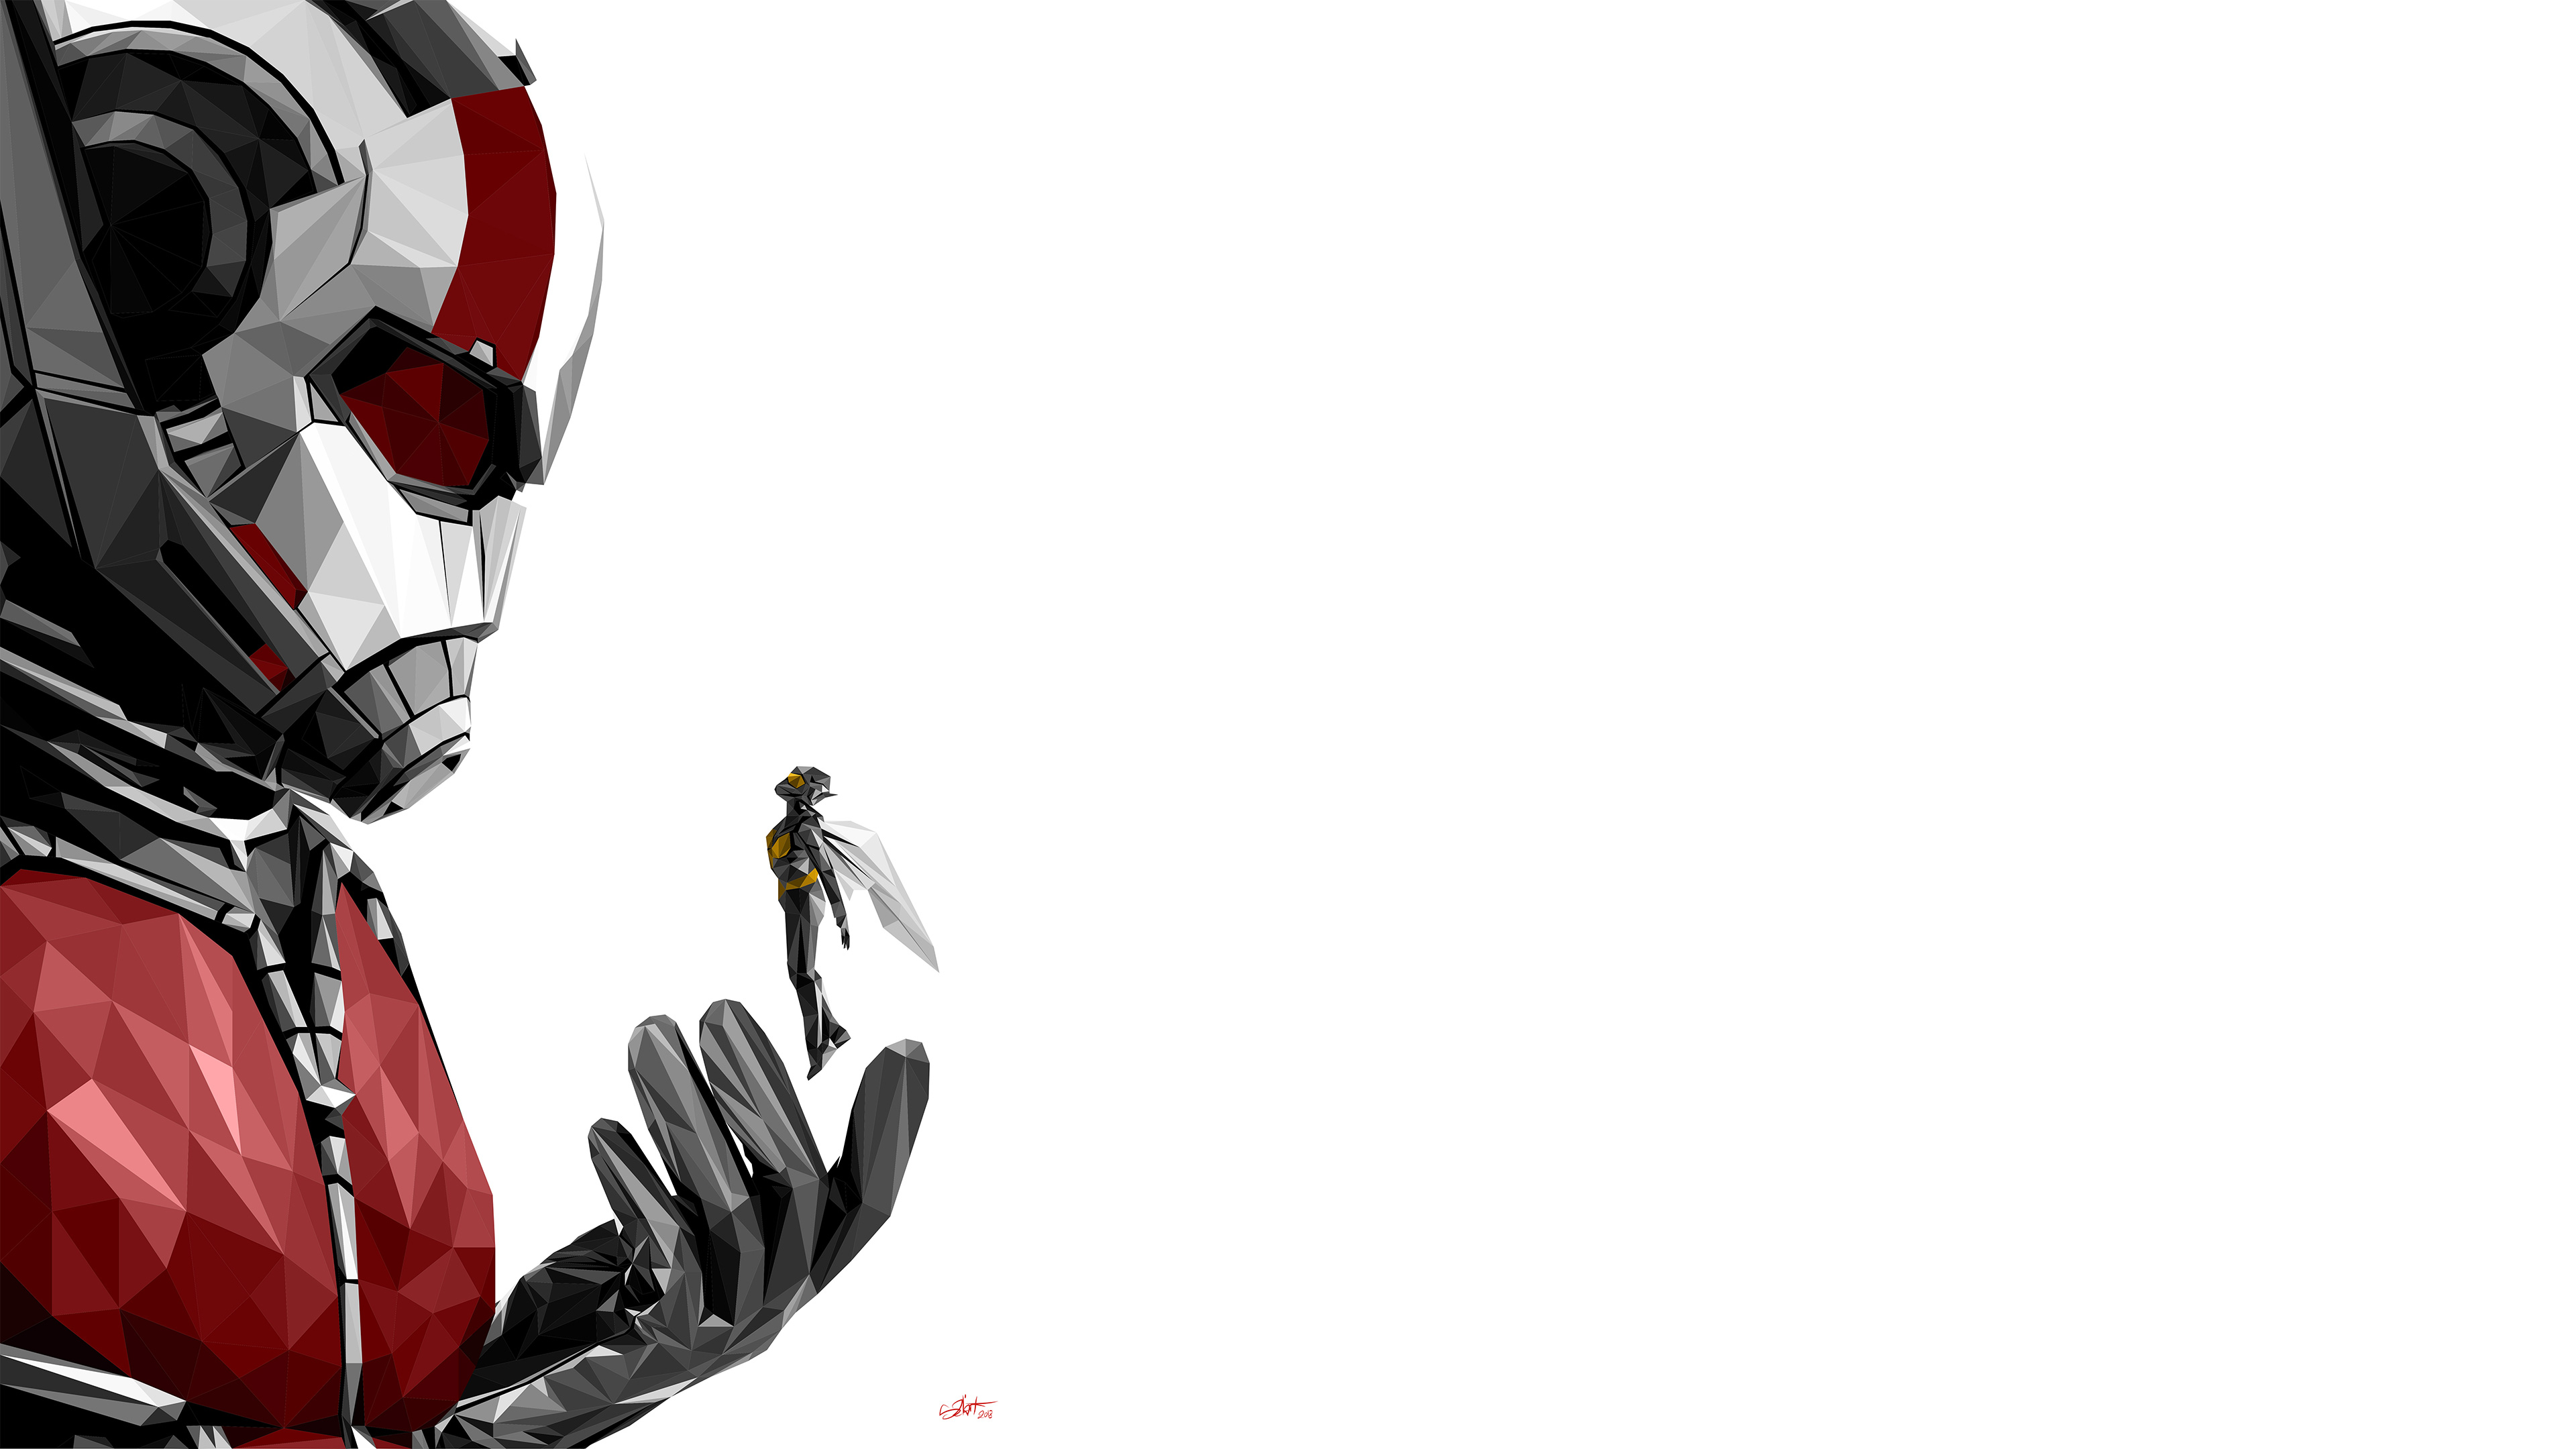 Ant Man Retina Movie Wallpaper: Ant Man And The Wasp Movie 4k, HD Movies, 4k Wallpapers